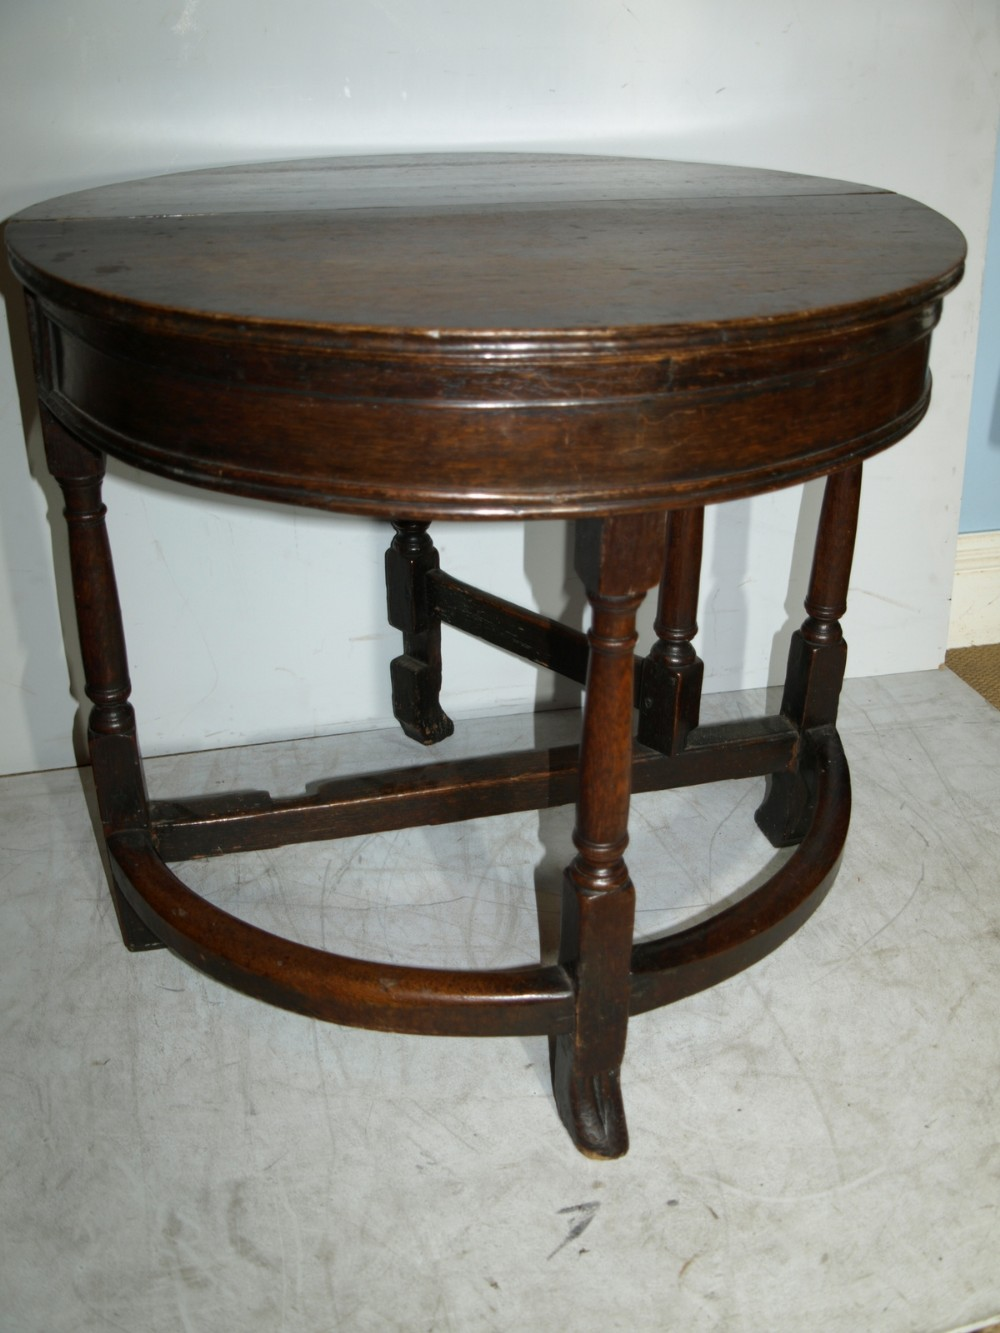 a mid to late 17th century oak box top gate leg table